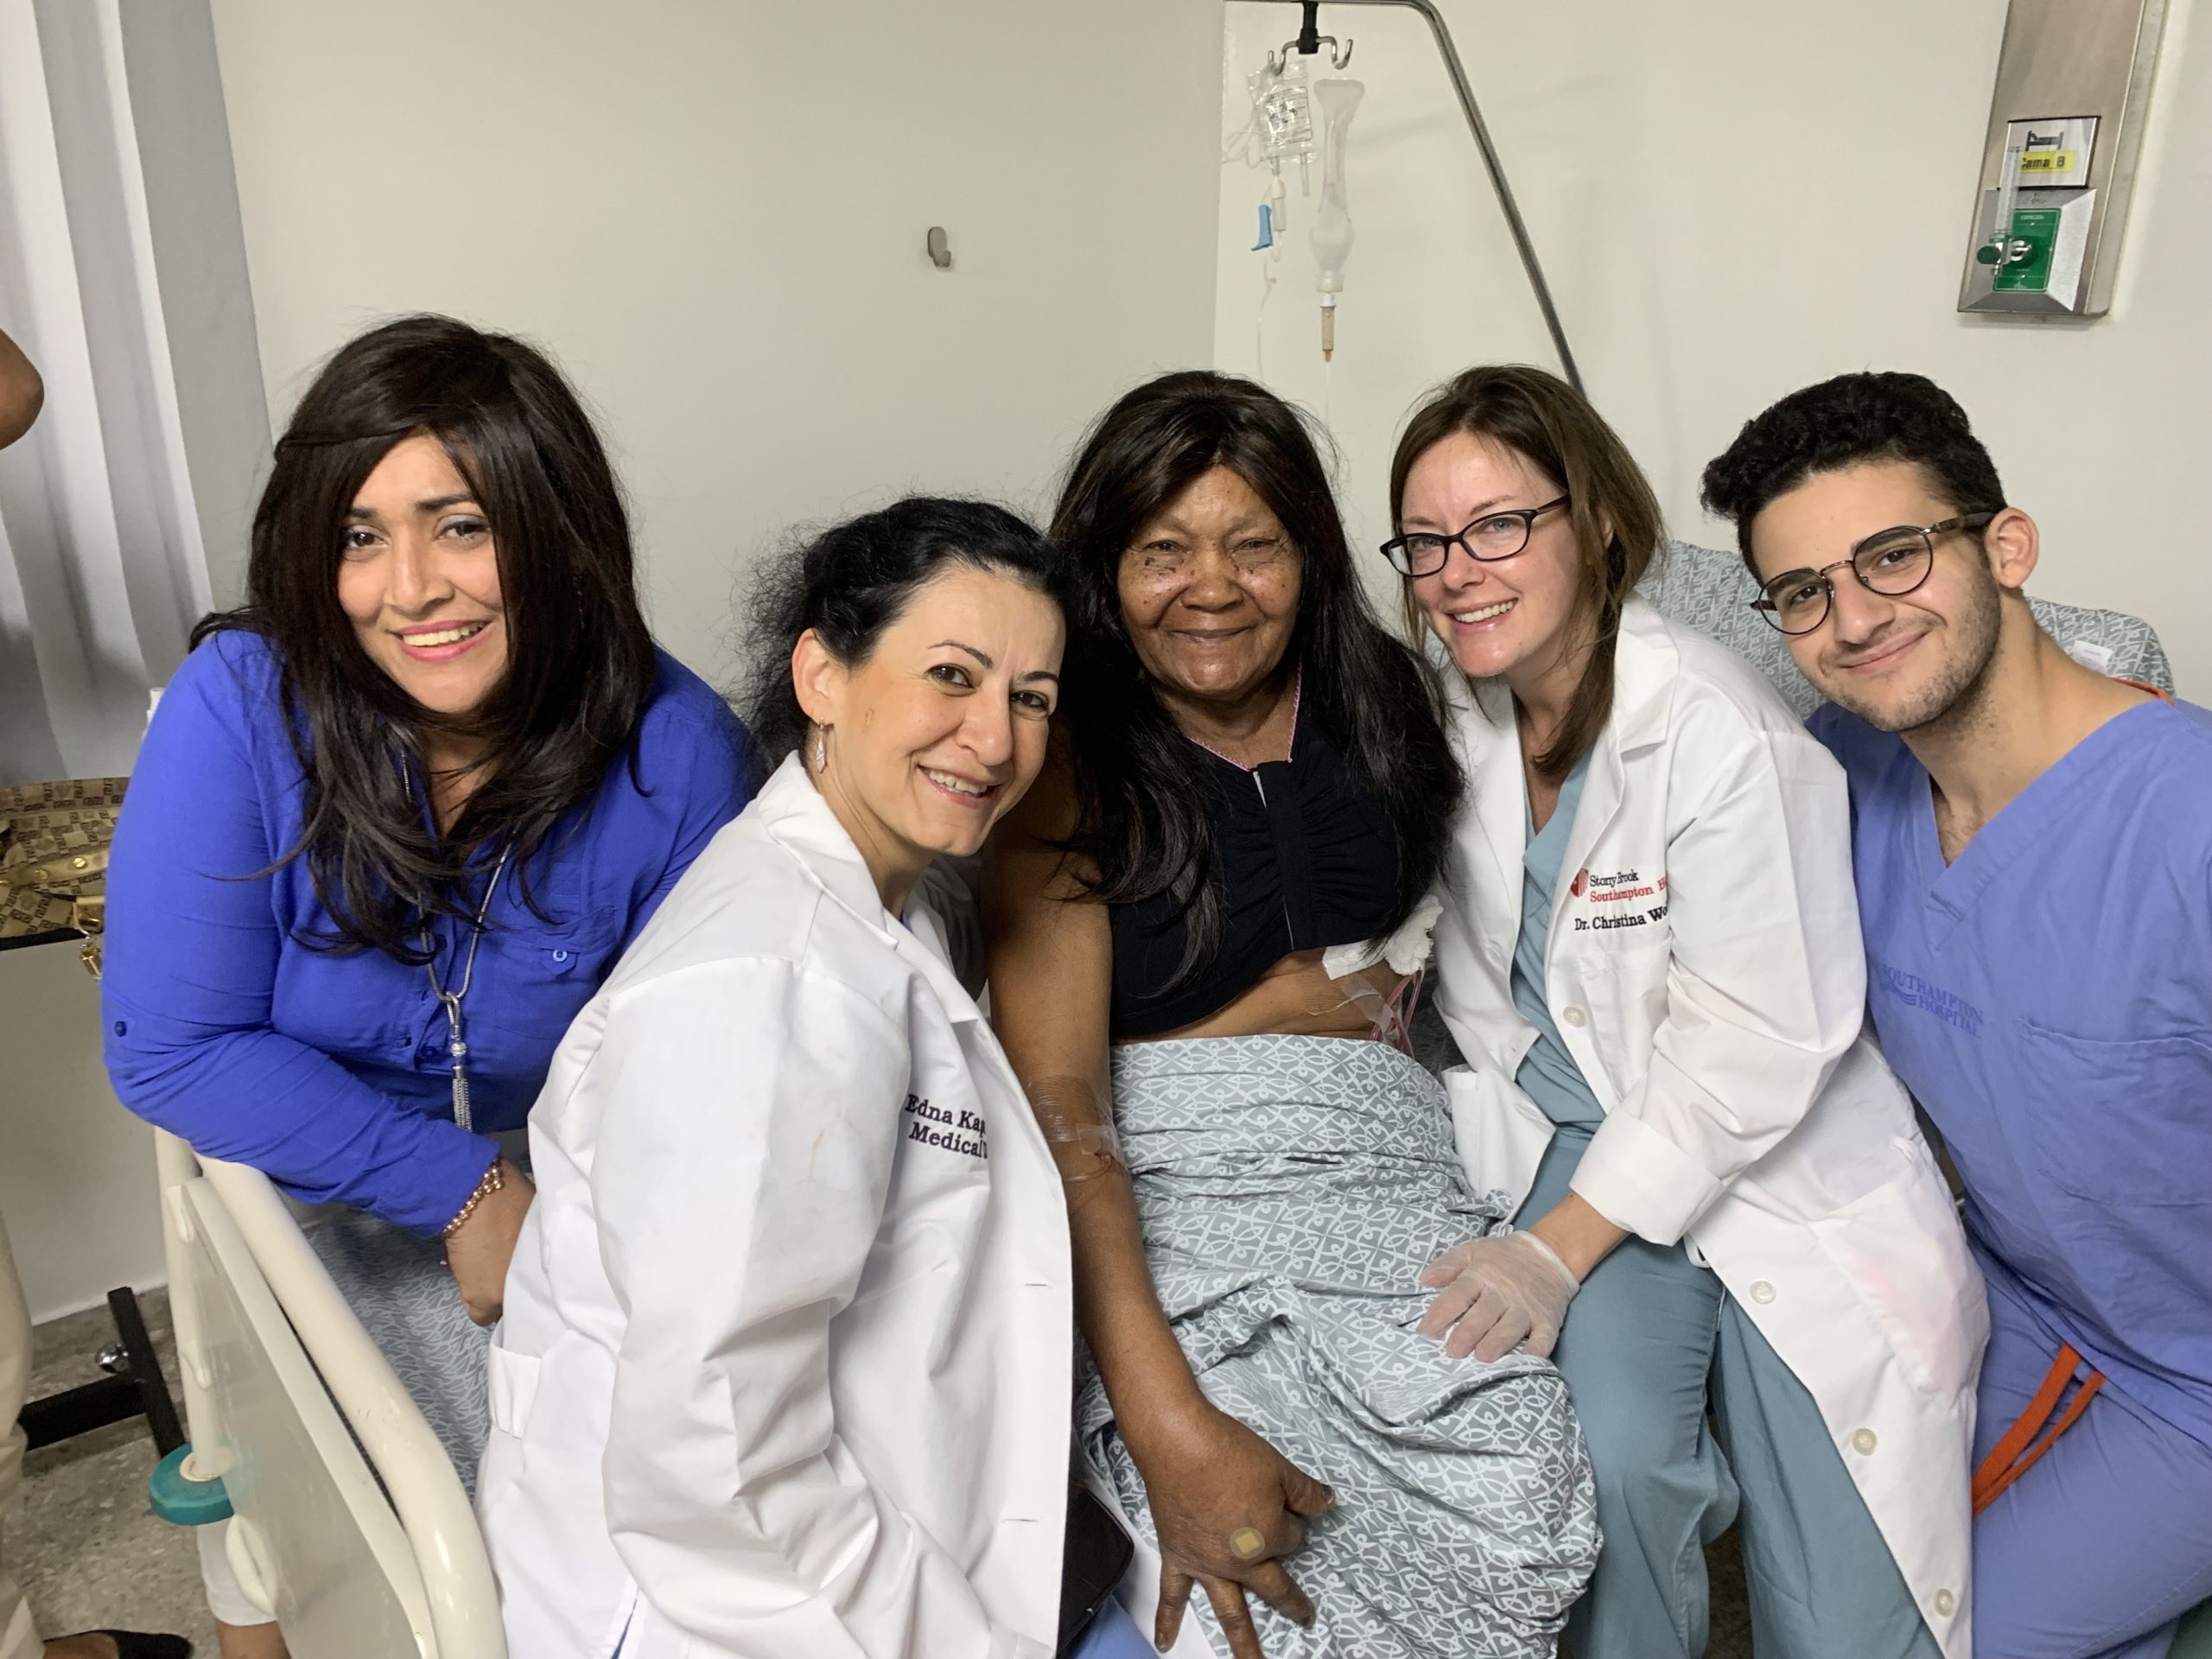 The 2019 team, from left: Meriz Yliana Guzman Cabrera, patient navigator; Dr. Edna Kapenhas; an unnamed patient; Christina Wolchok, surgical resident; and Michael Valdes. courtesy Edna Kapenhas, MD